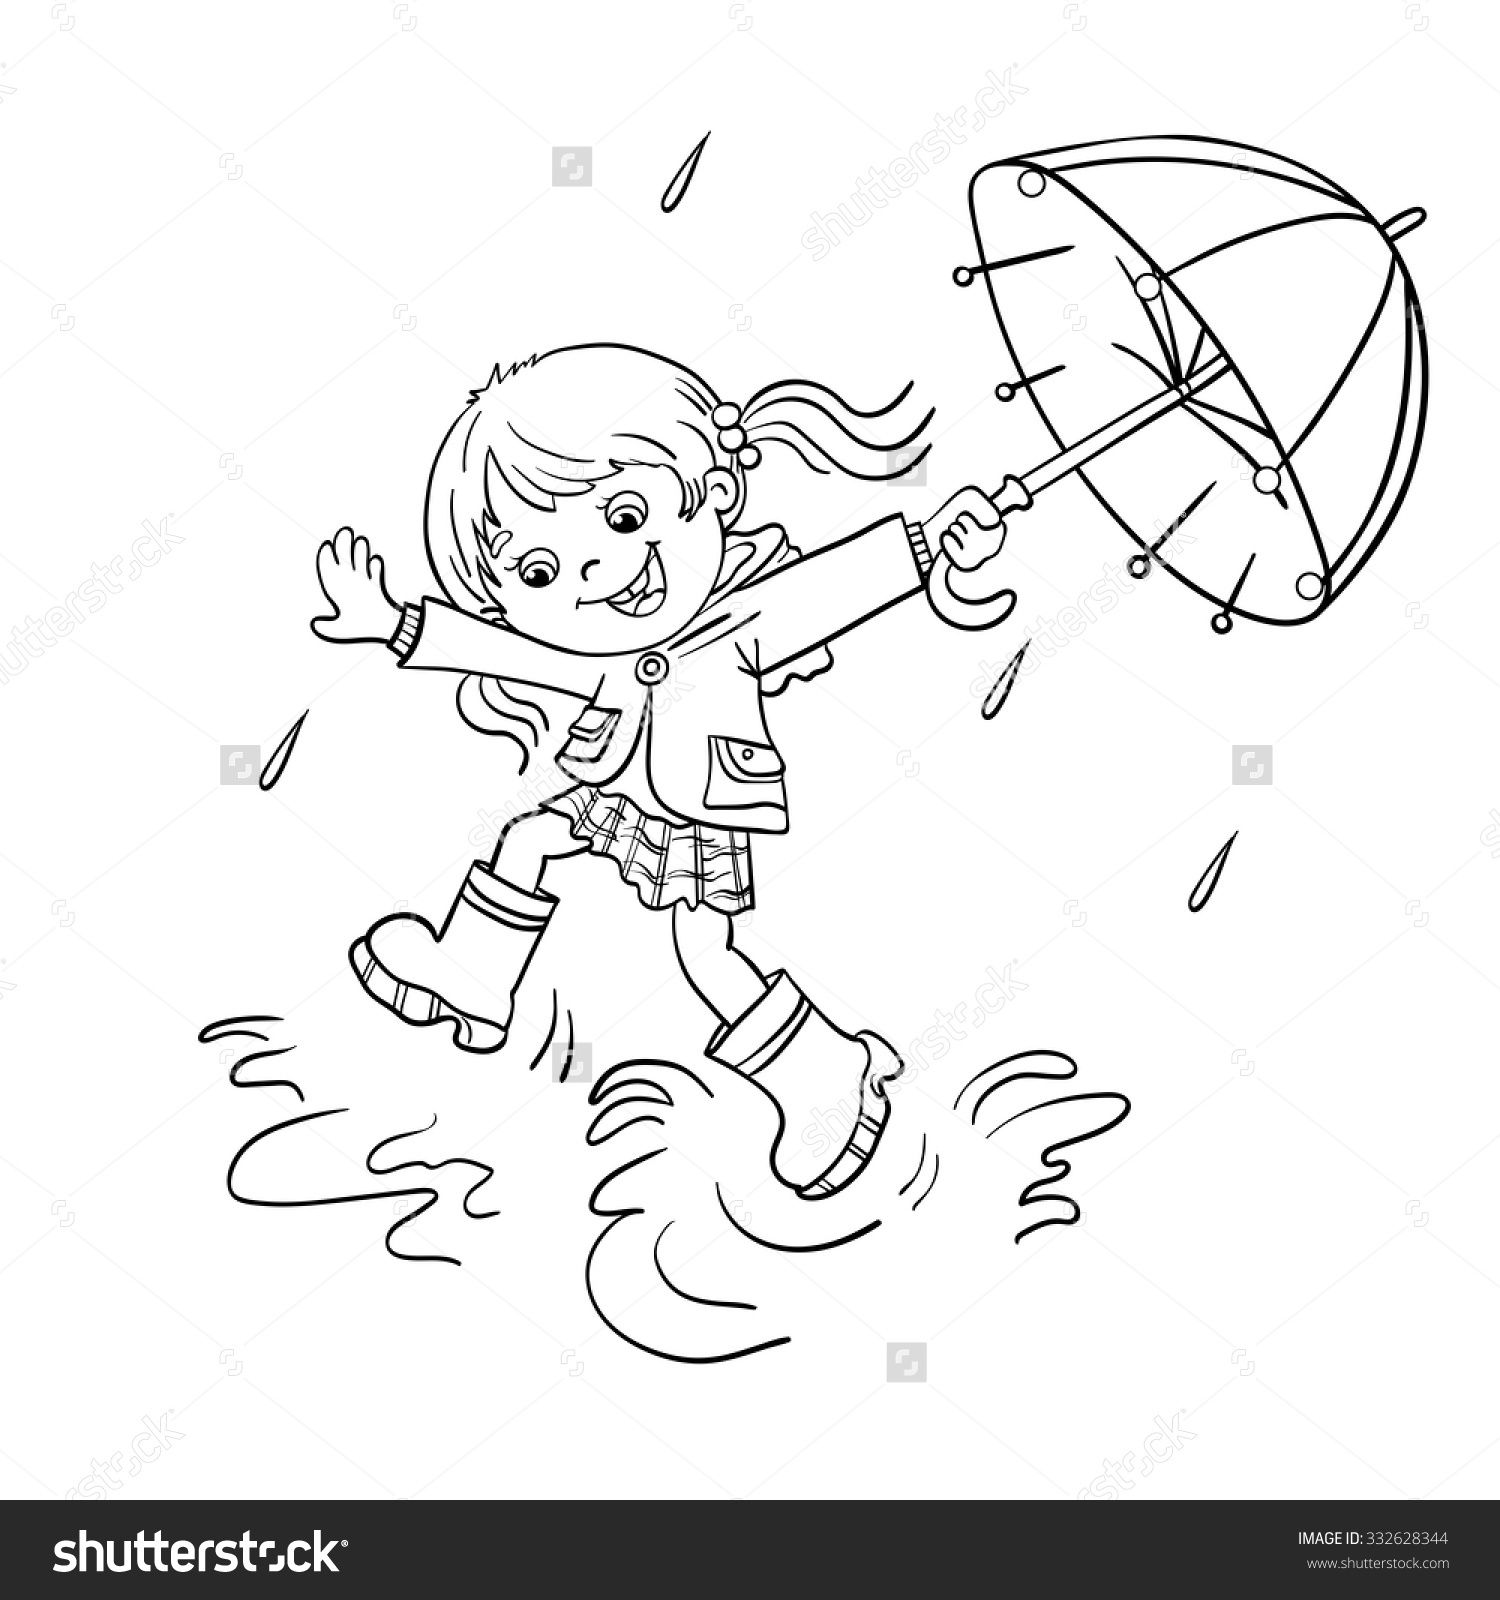 1500x1600 Playing In The Rain Coloring Pages Coloring Page Outline